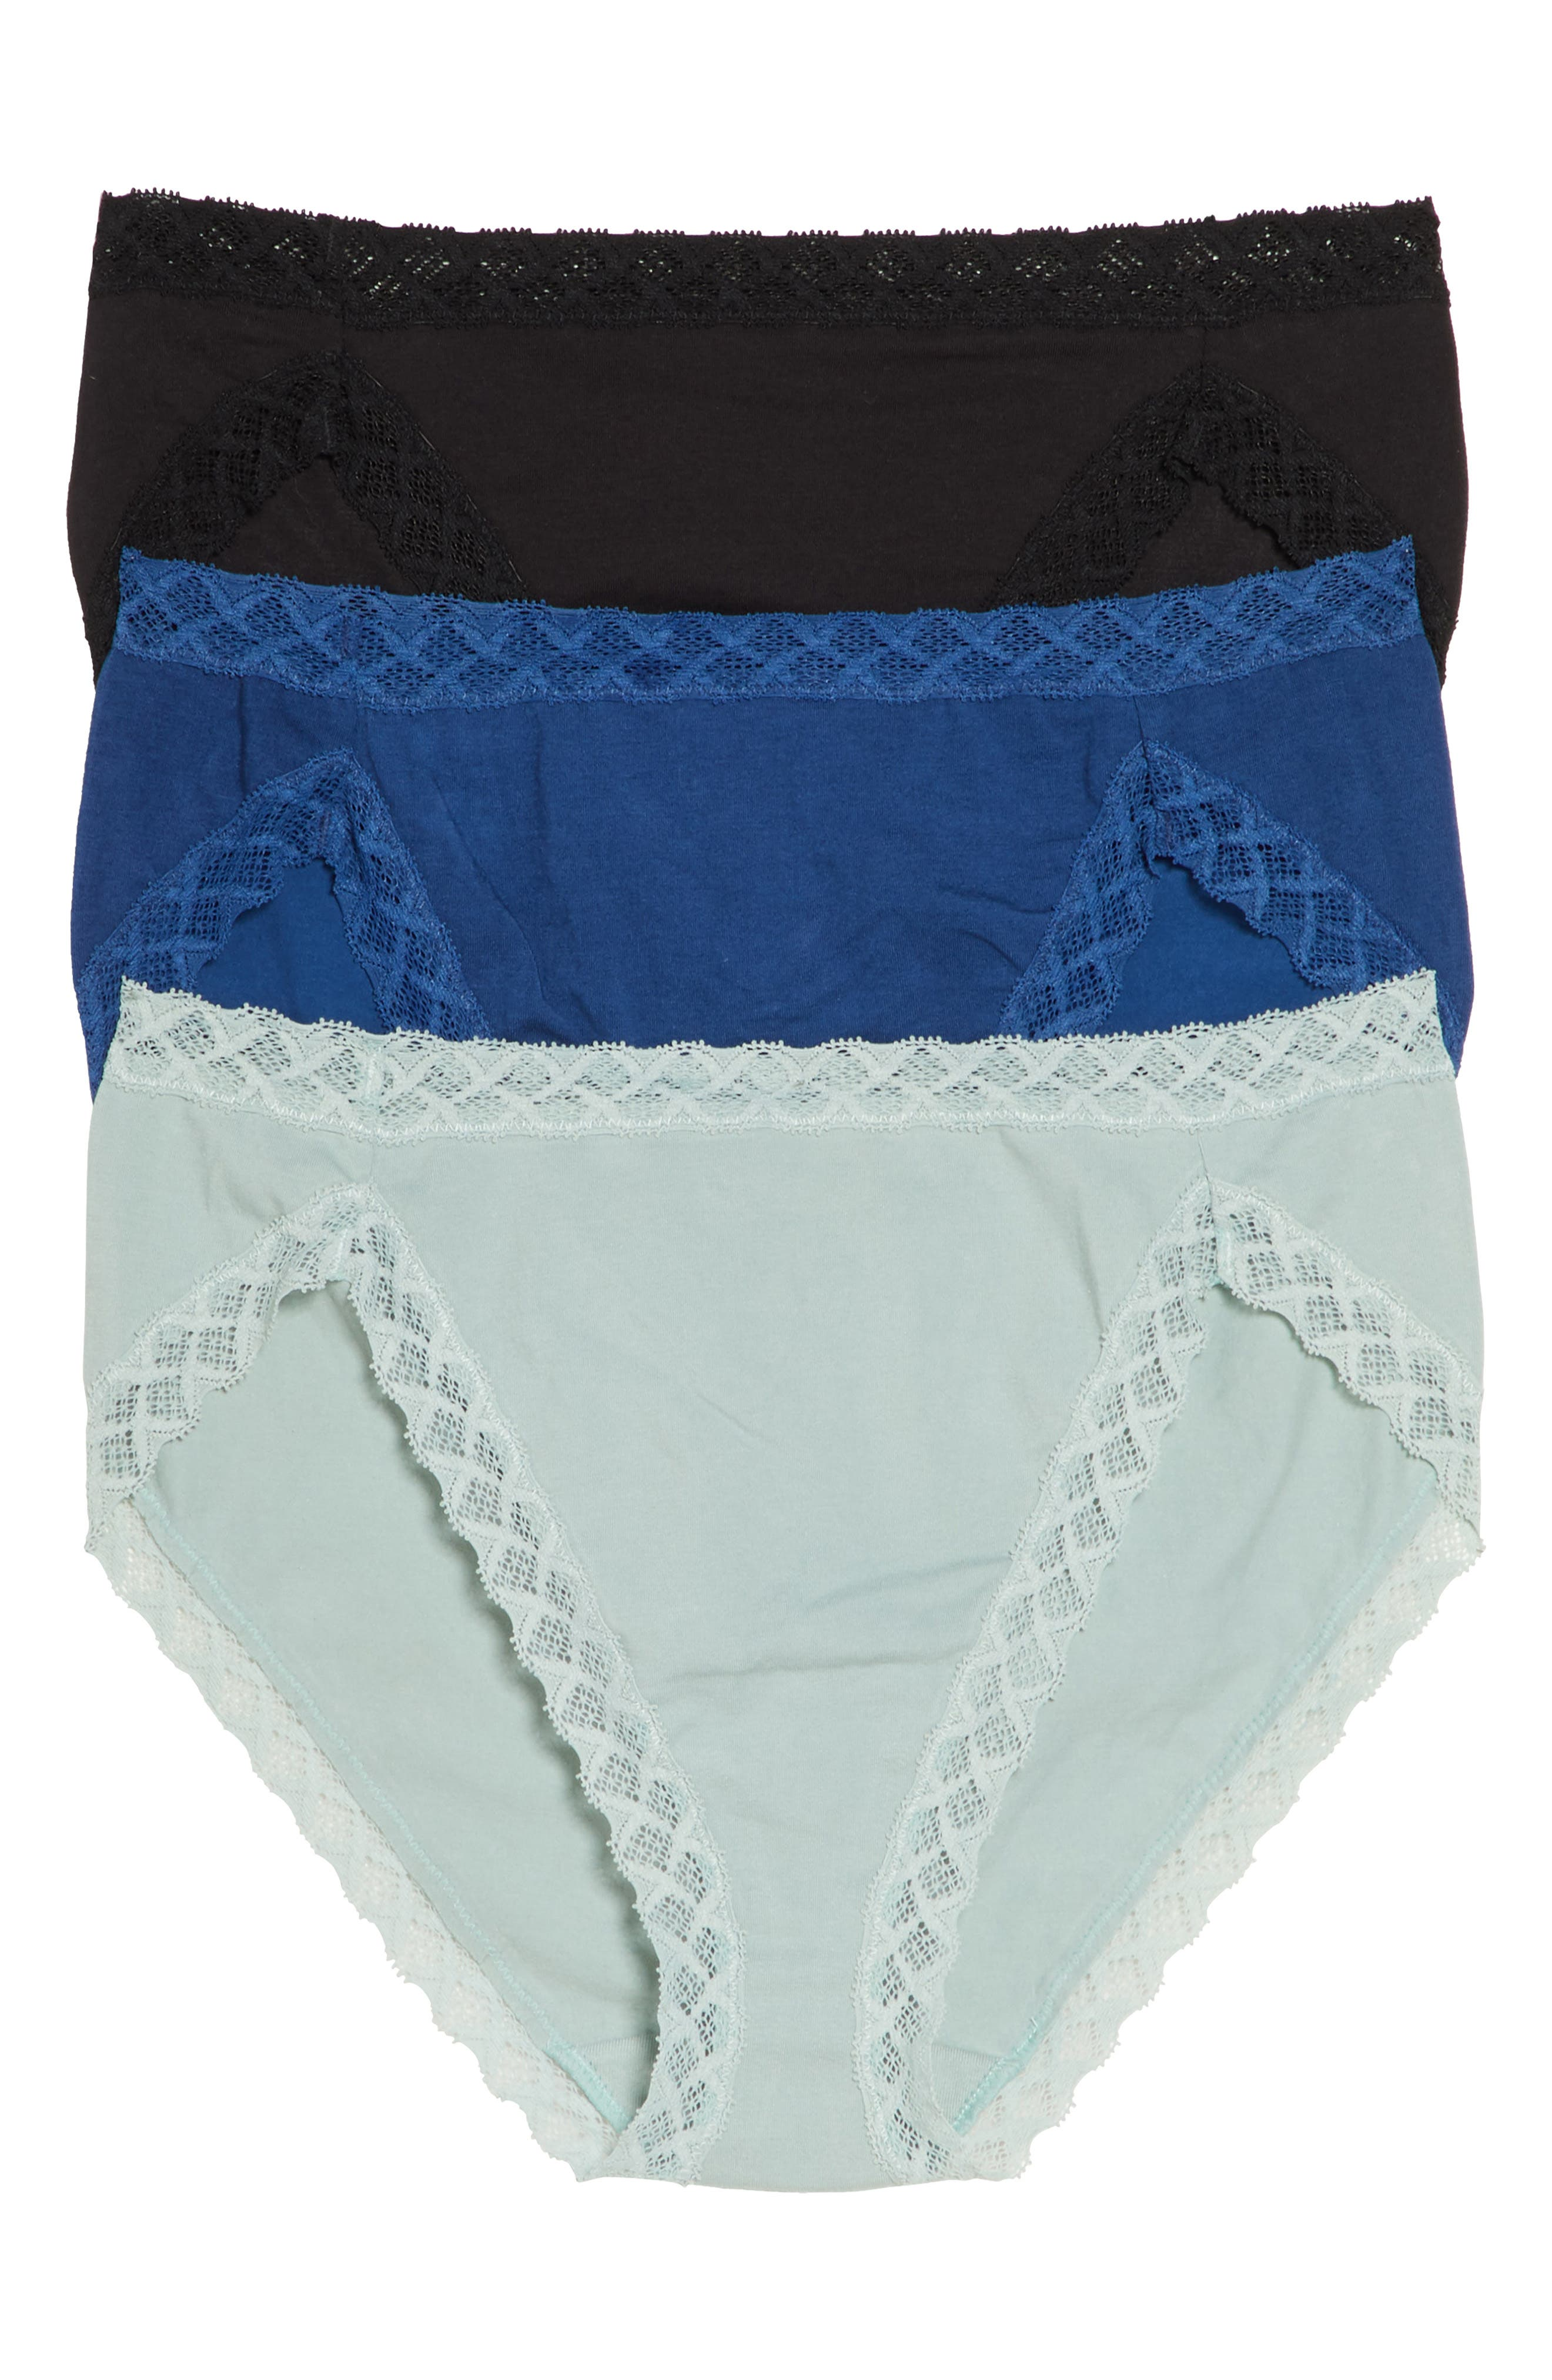 Image of Natori Bliss French Cut Briefs - Pack of 3